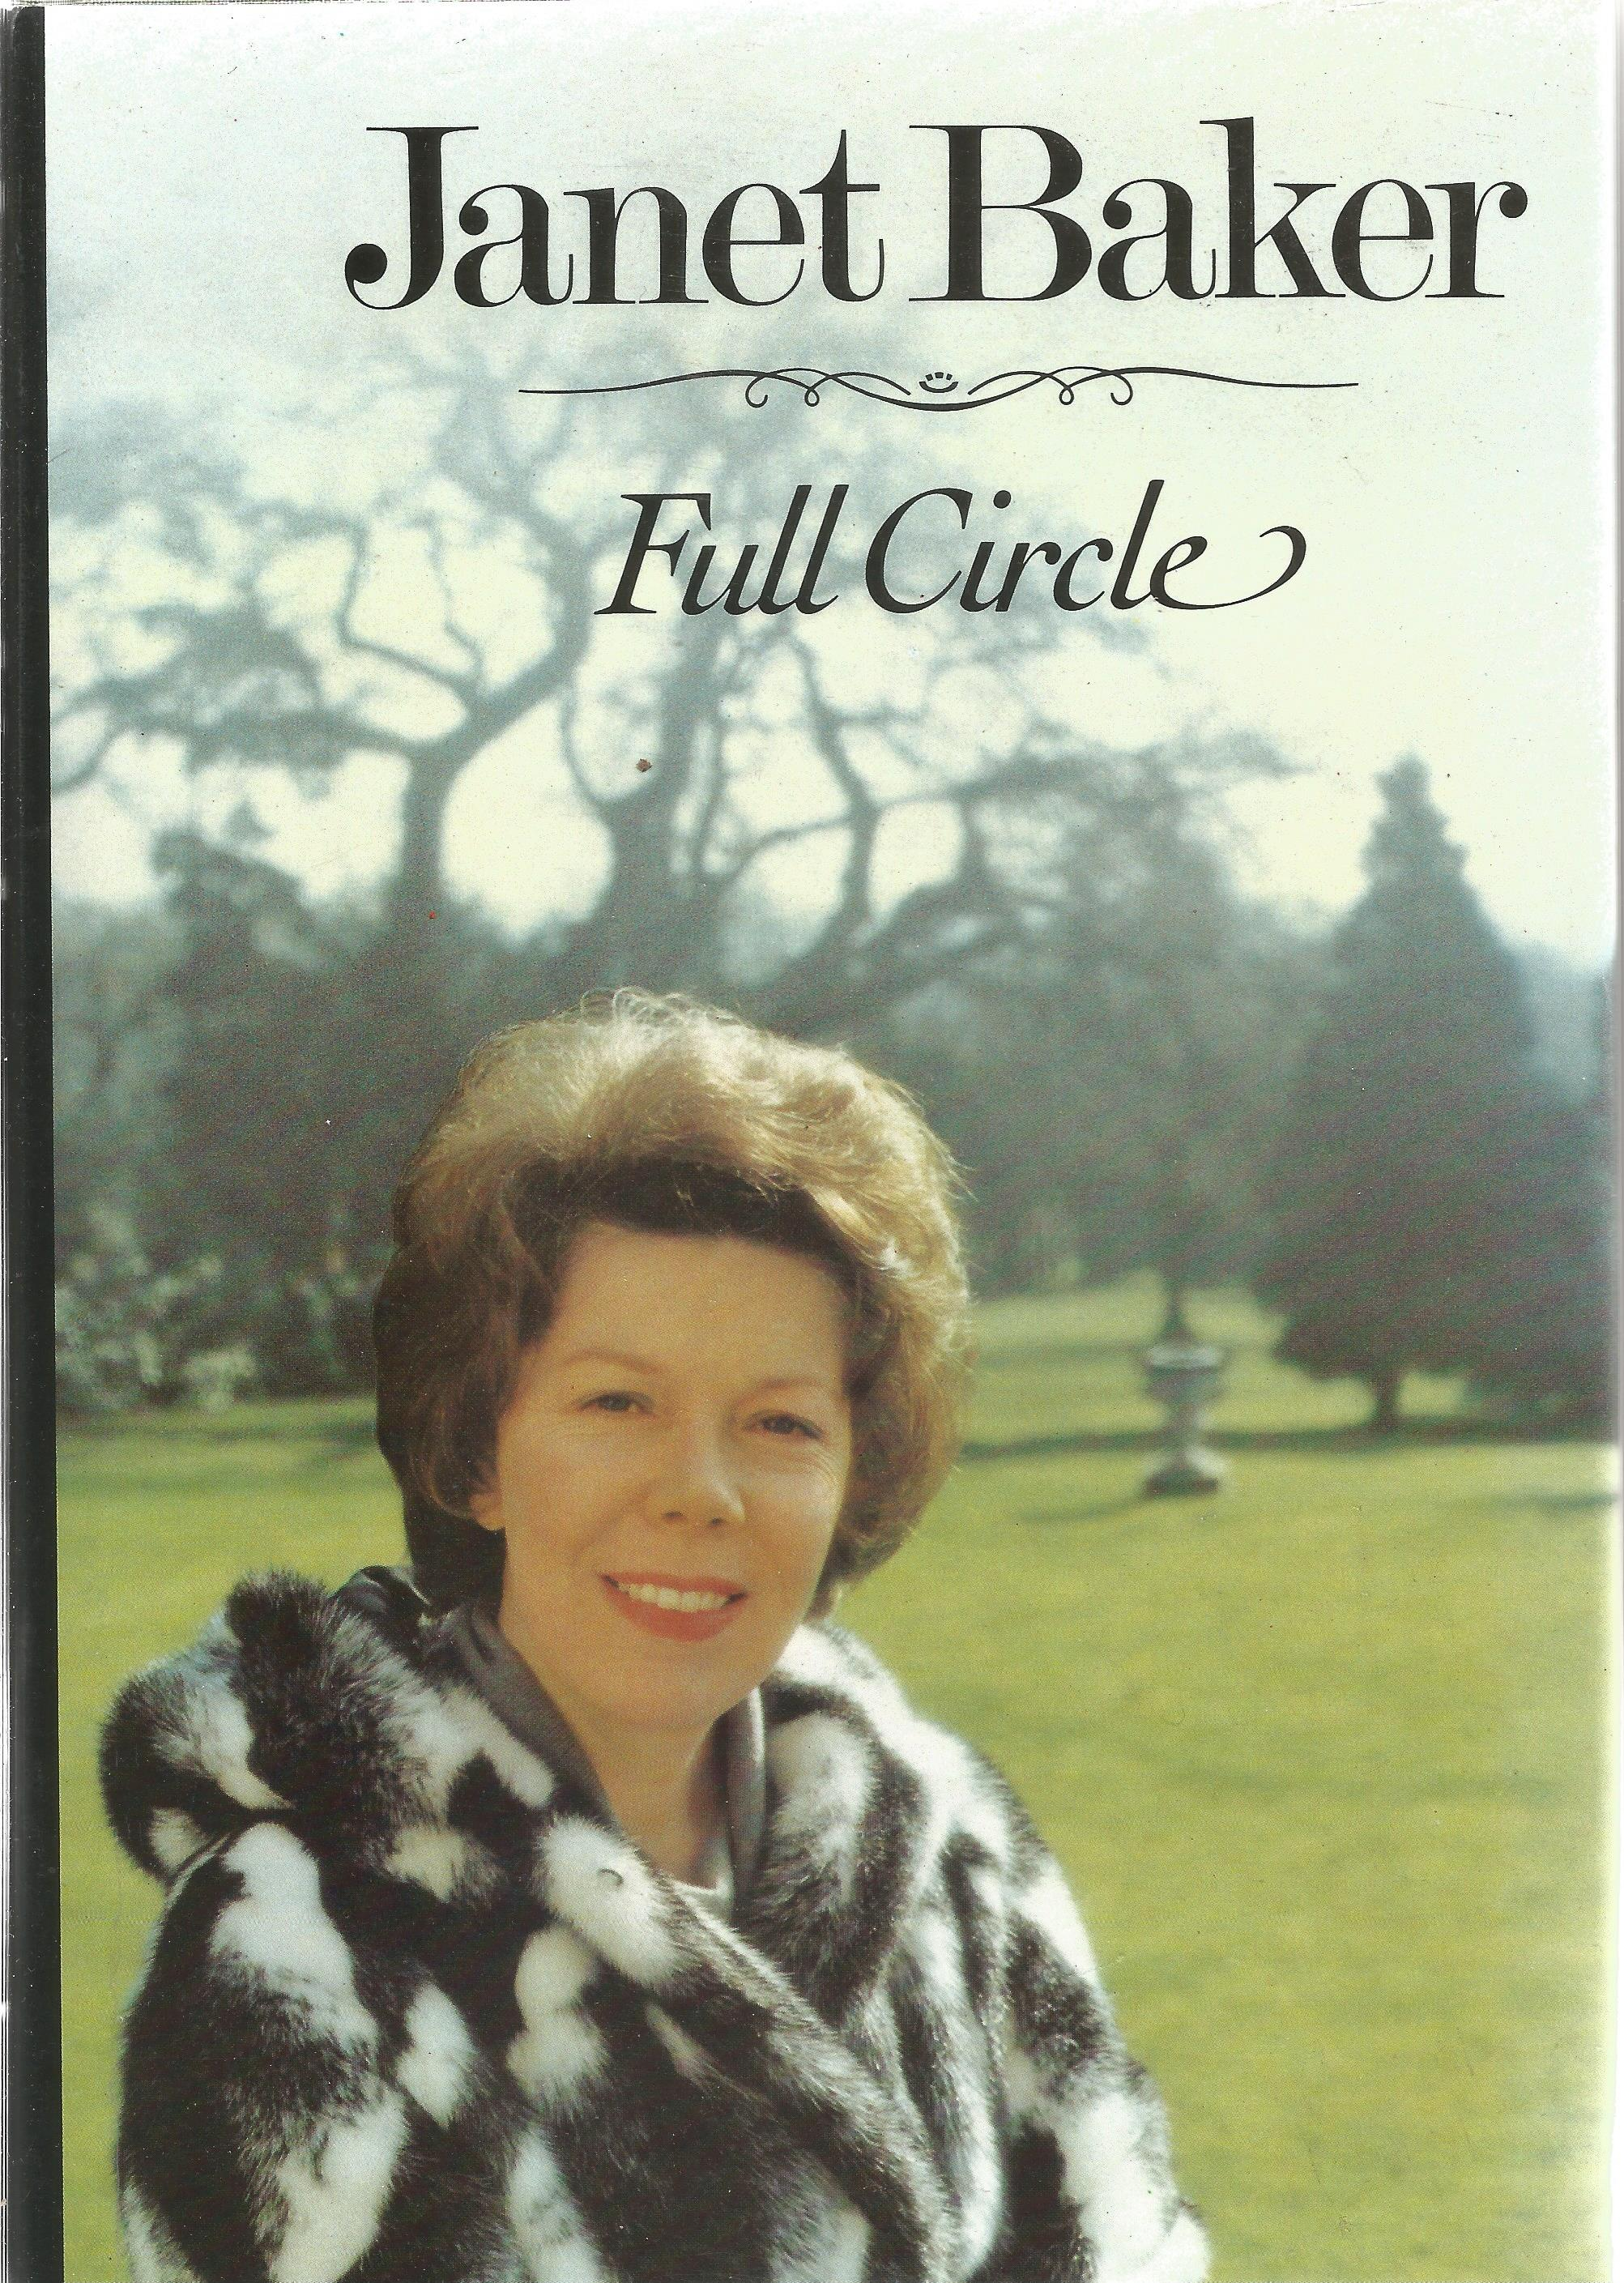 Janet Baker Hardback Book Full Circle signed by the Author on the Title Page First Edition Good